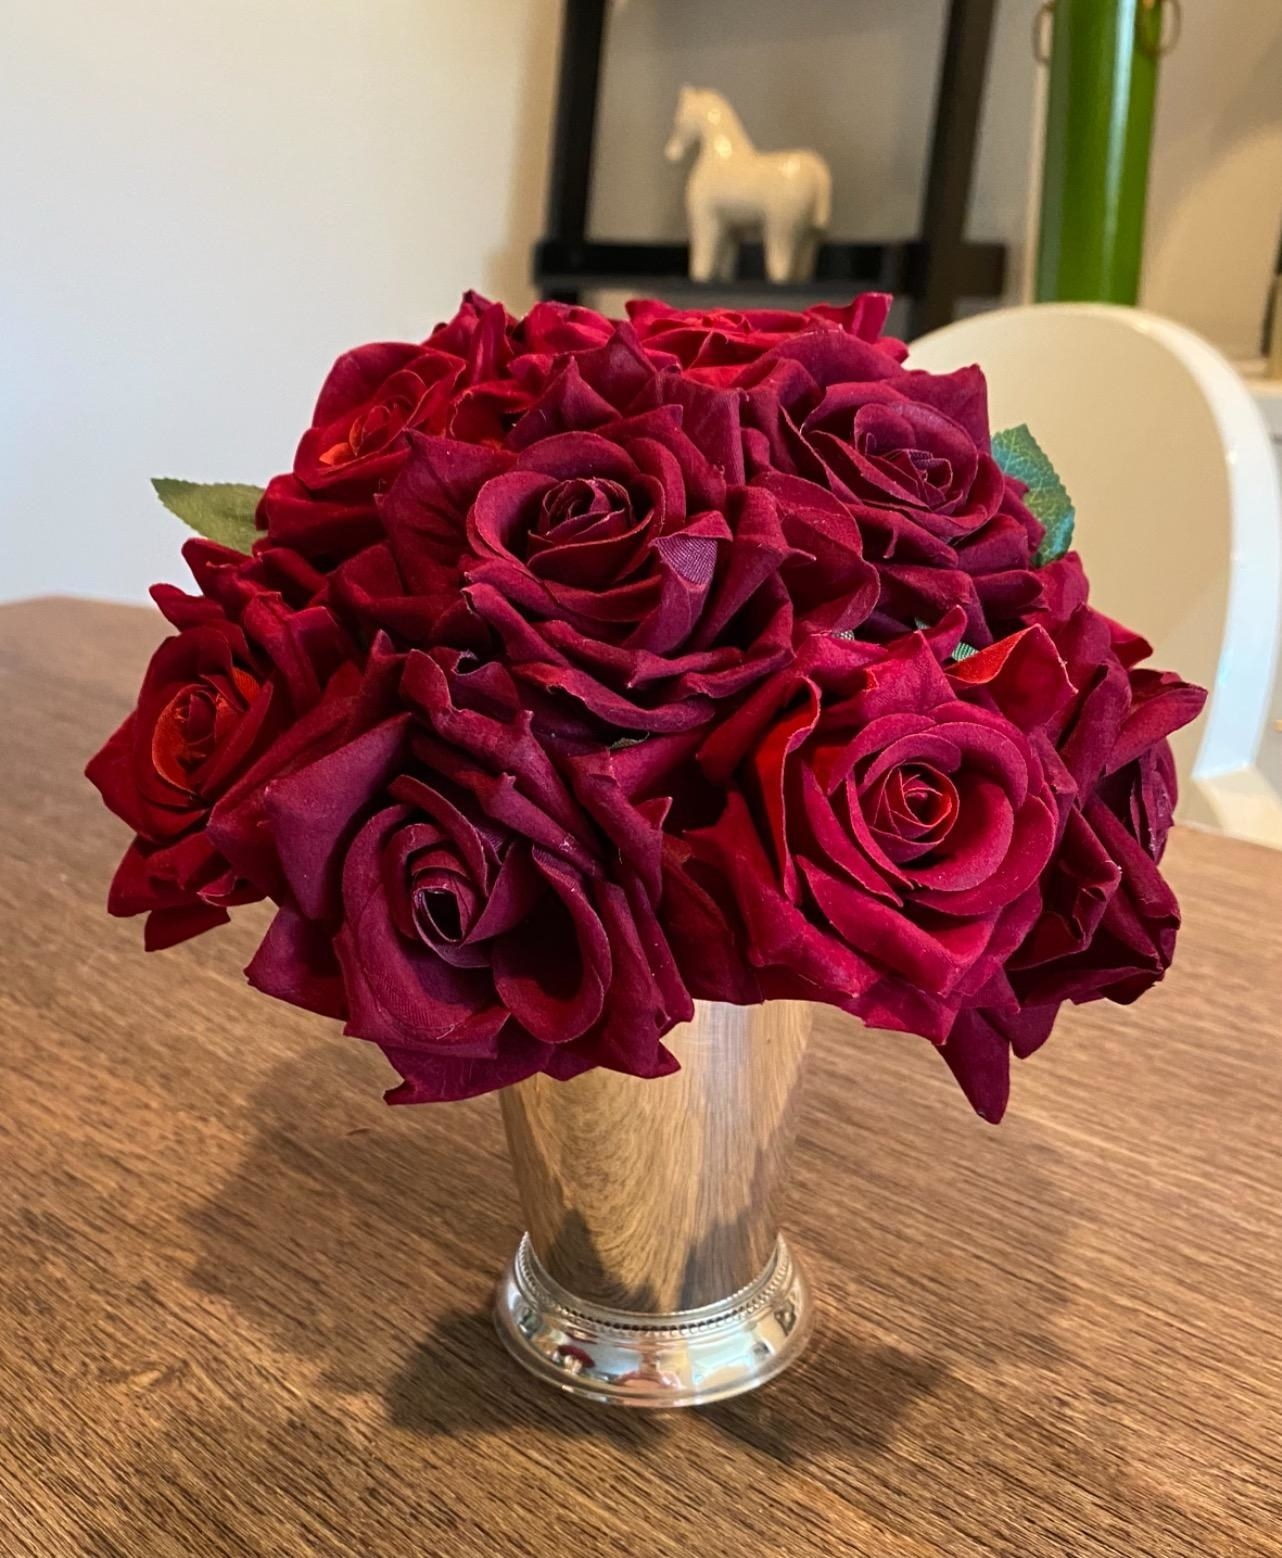 Reviewer's bouquet of faux red roses are arranged in a silver vase